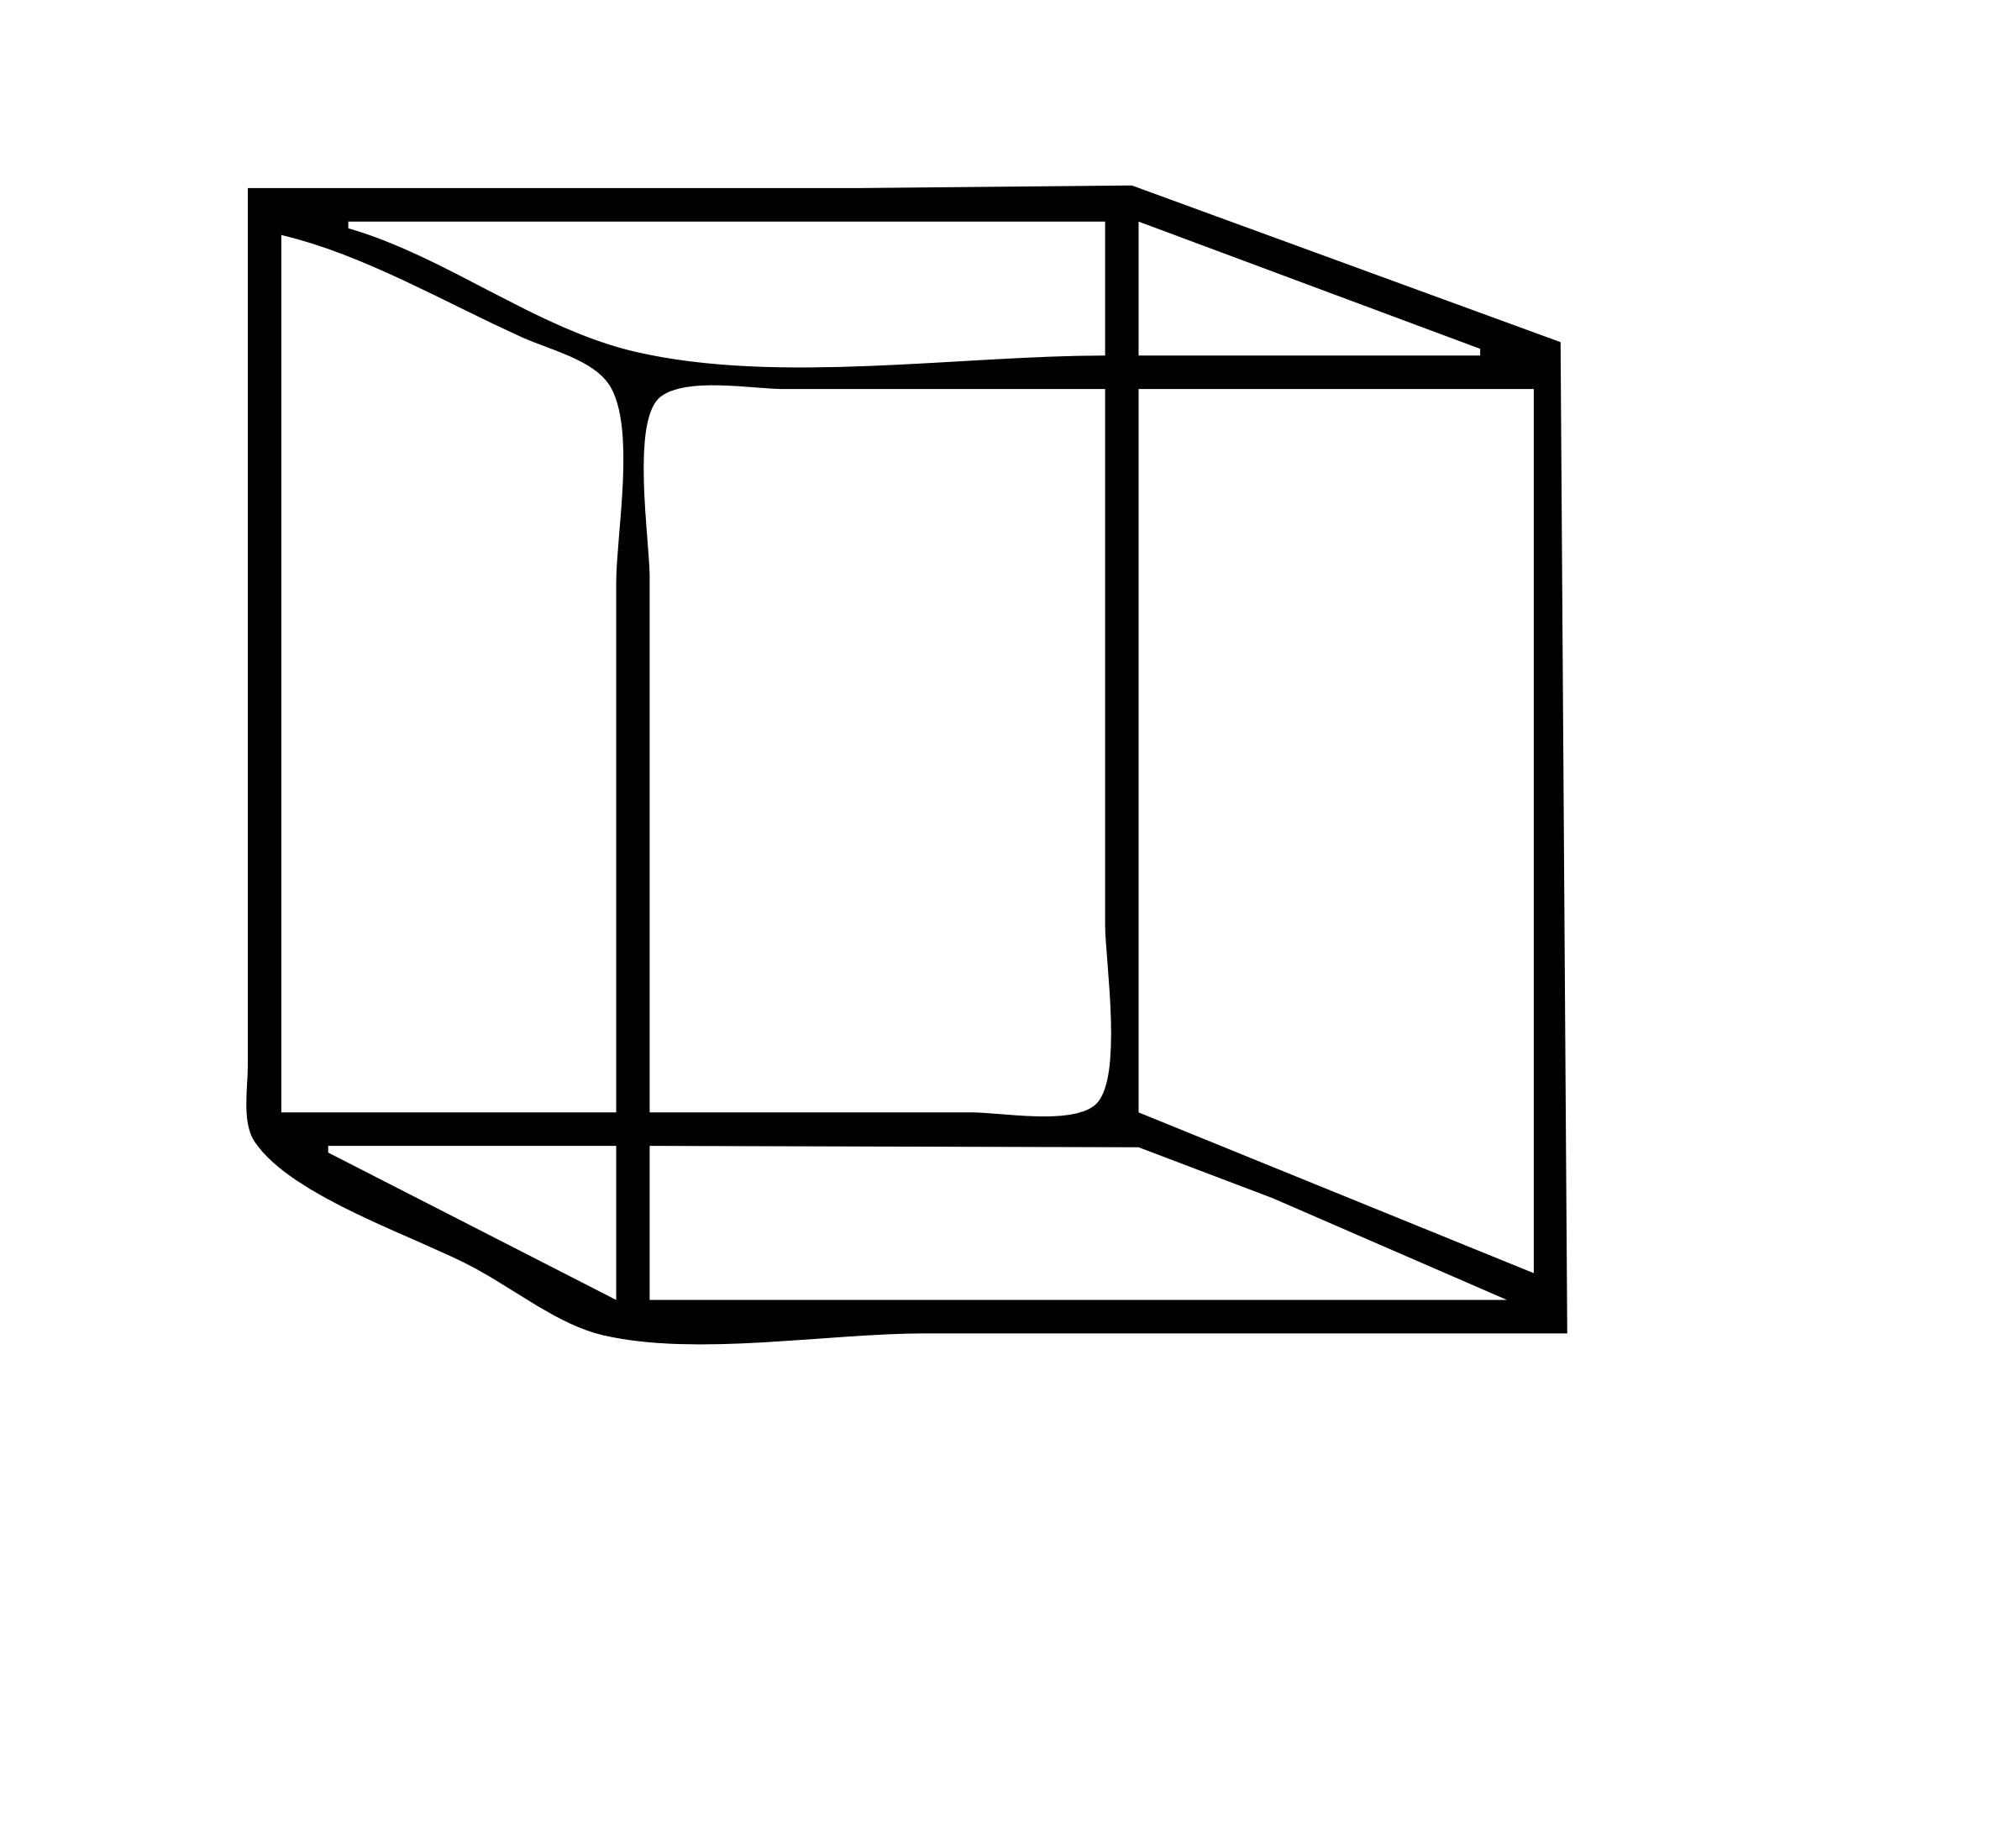 Cube clipart black and white, Cube black and white.